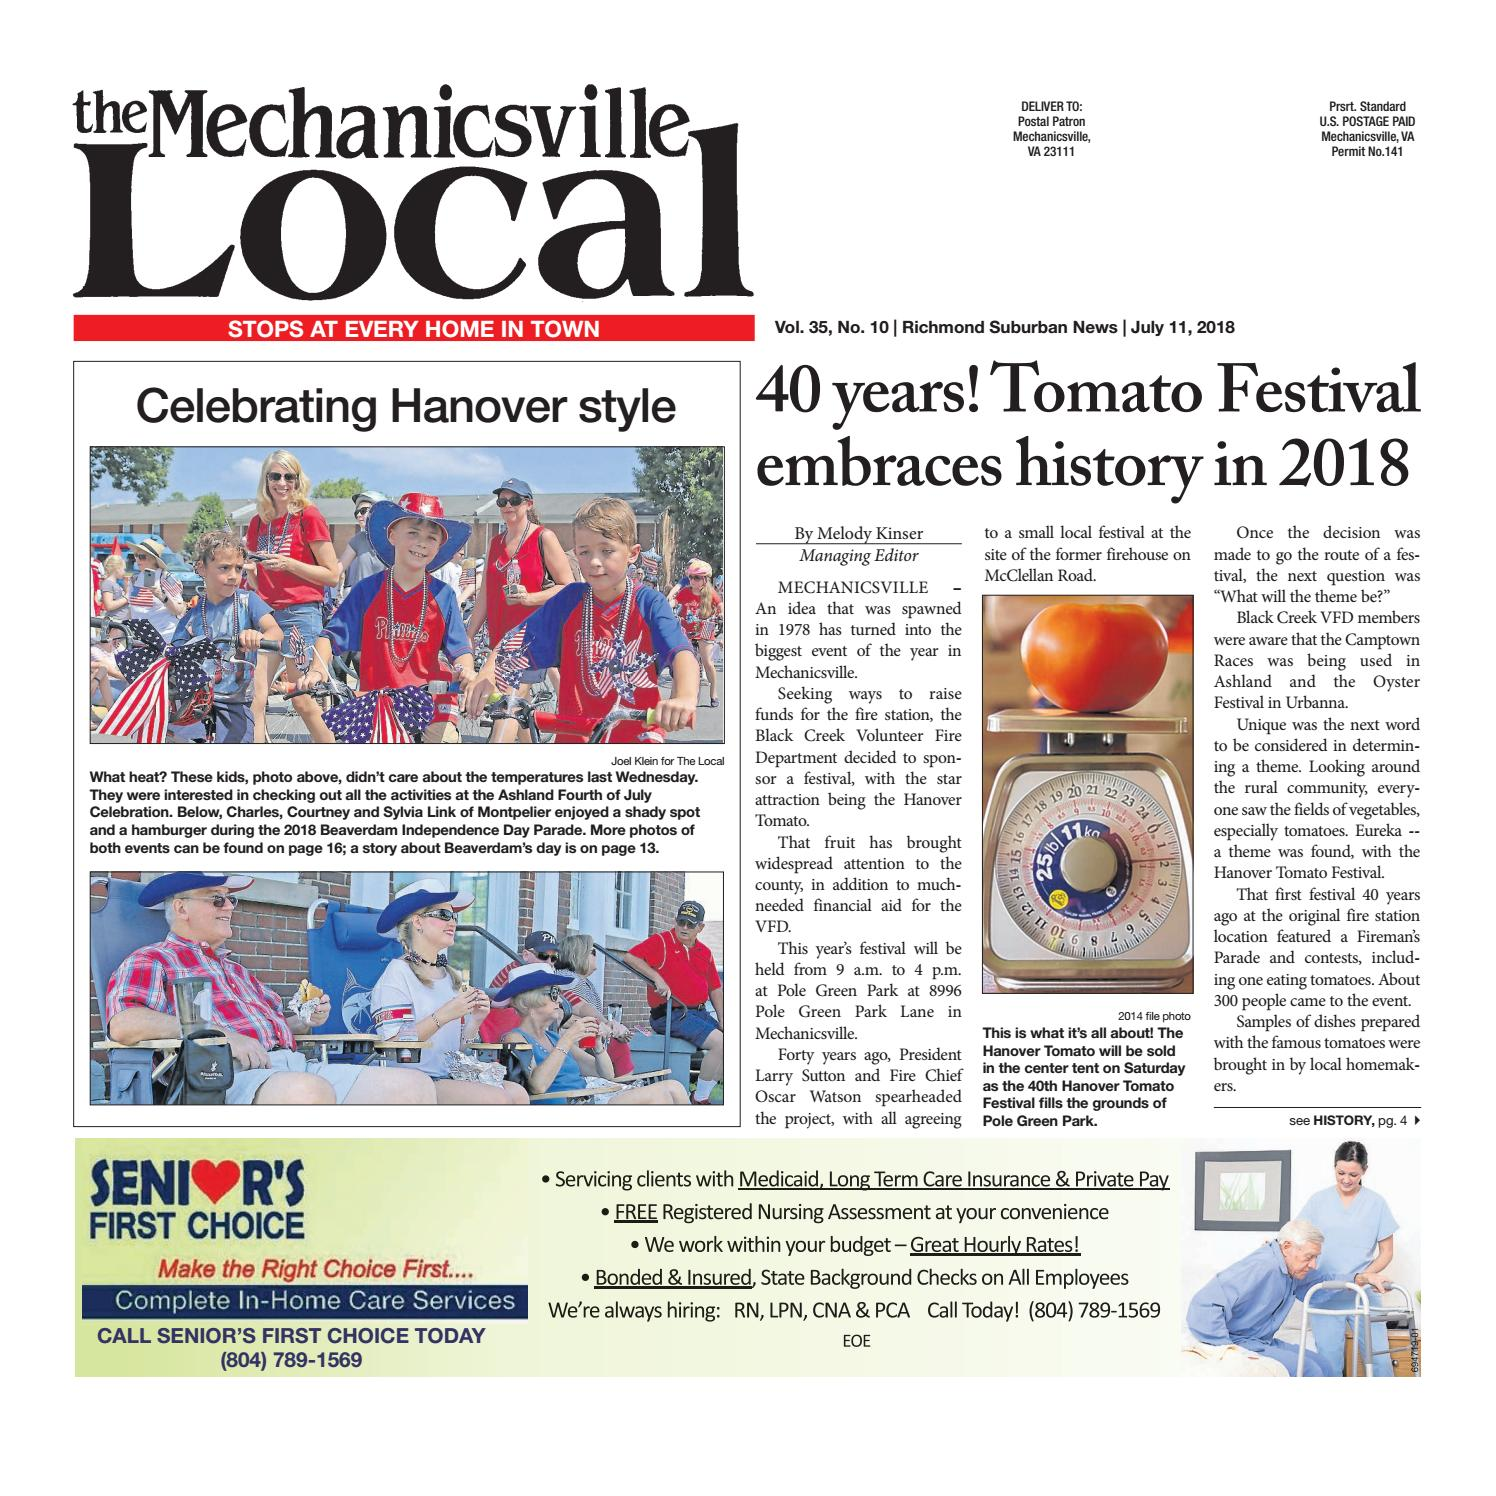 dede2c25 The Mechanicsville Local – 07/11/18 by The Mechanicsville Local - issuu